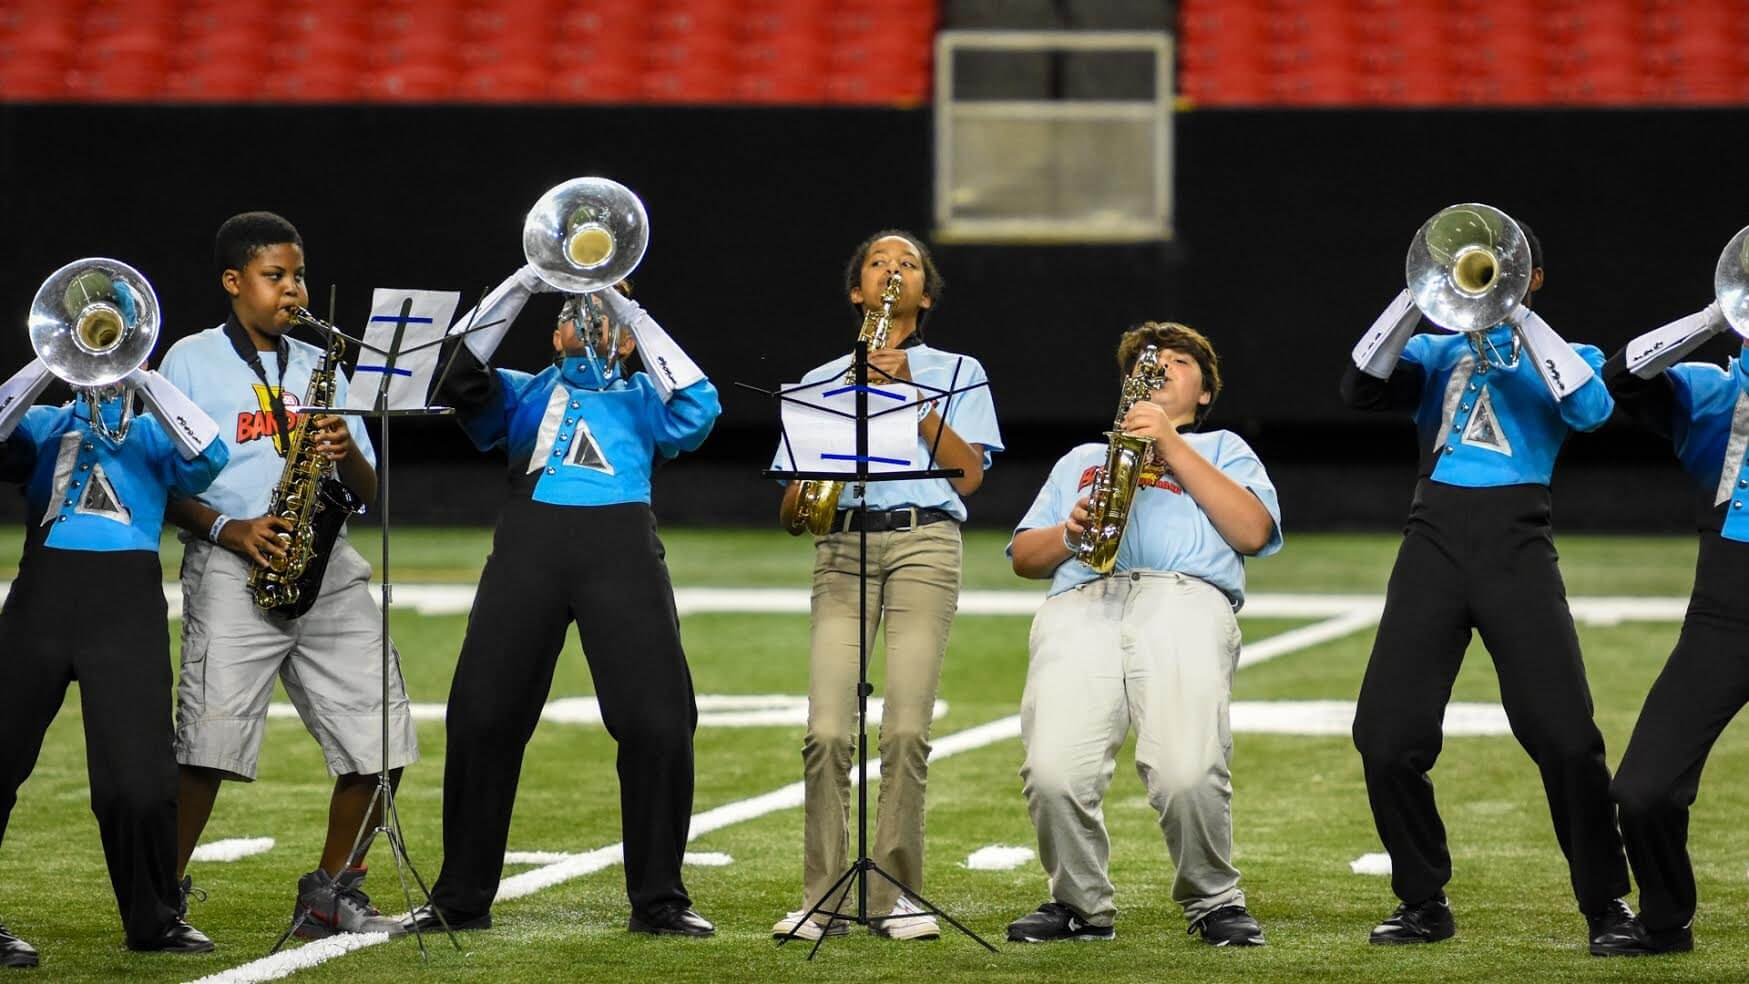 BANDtastic Georgia brings middle schoolers to the drum corps scene